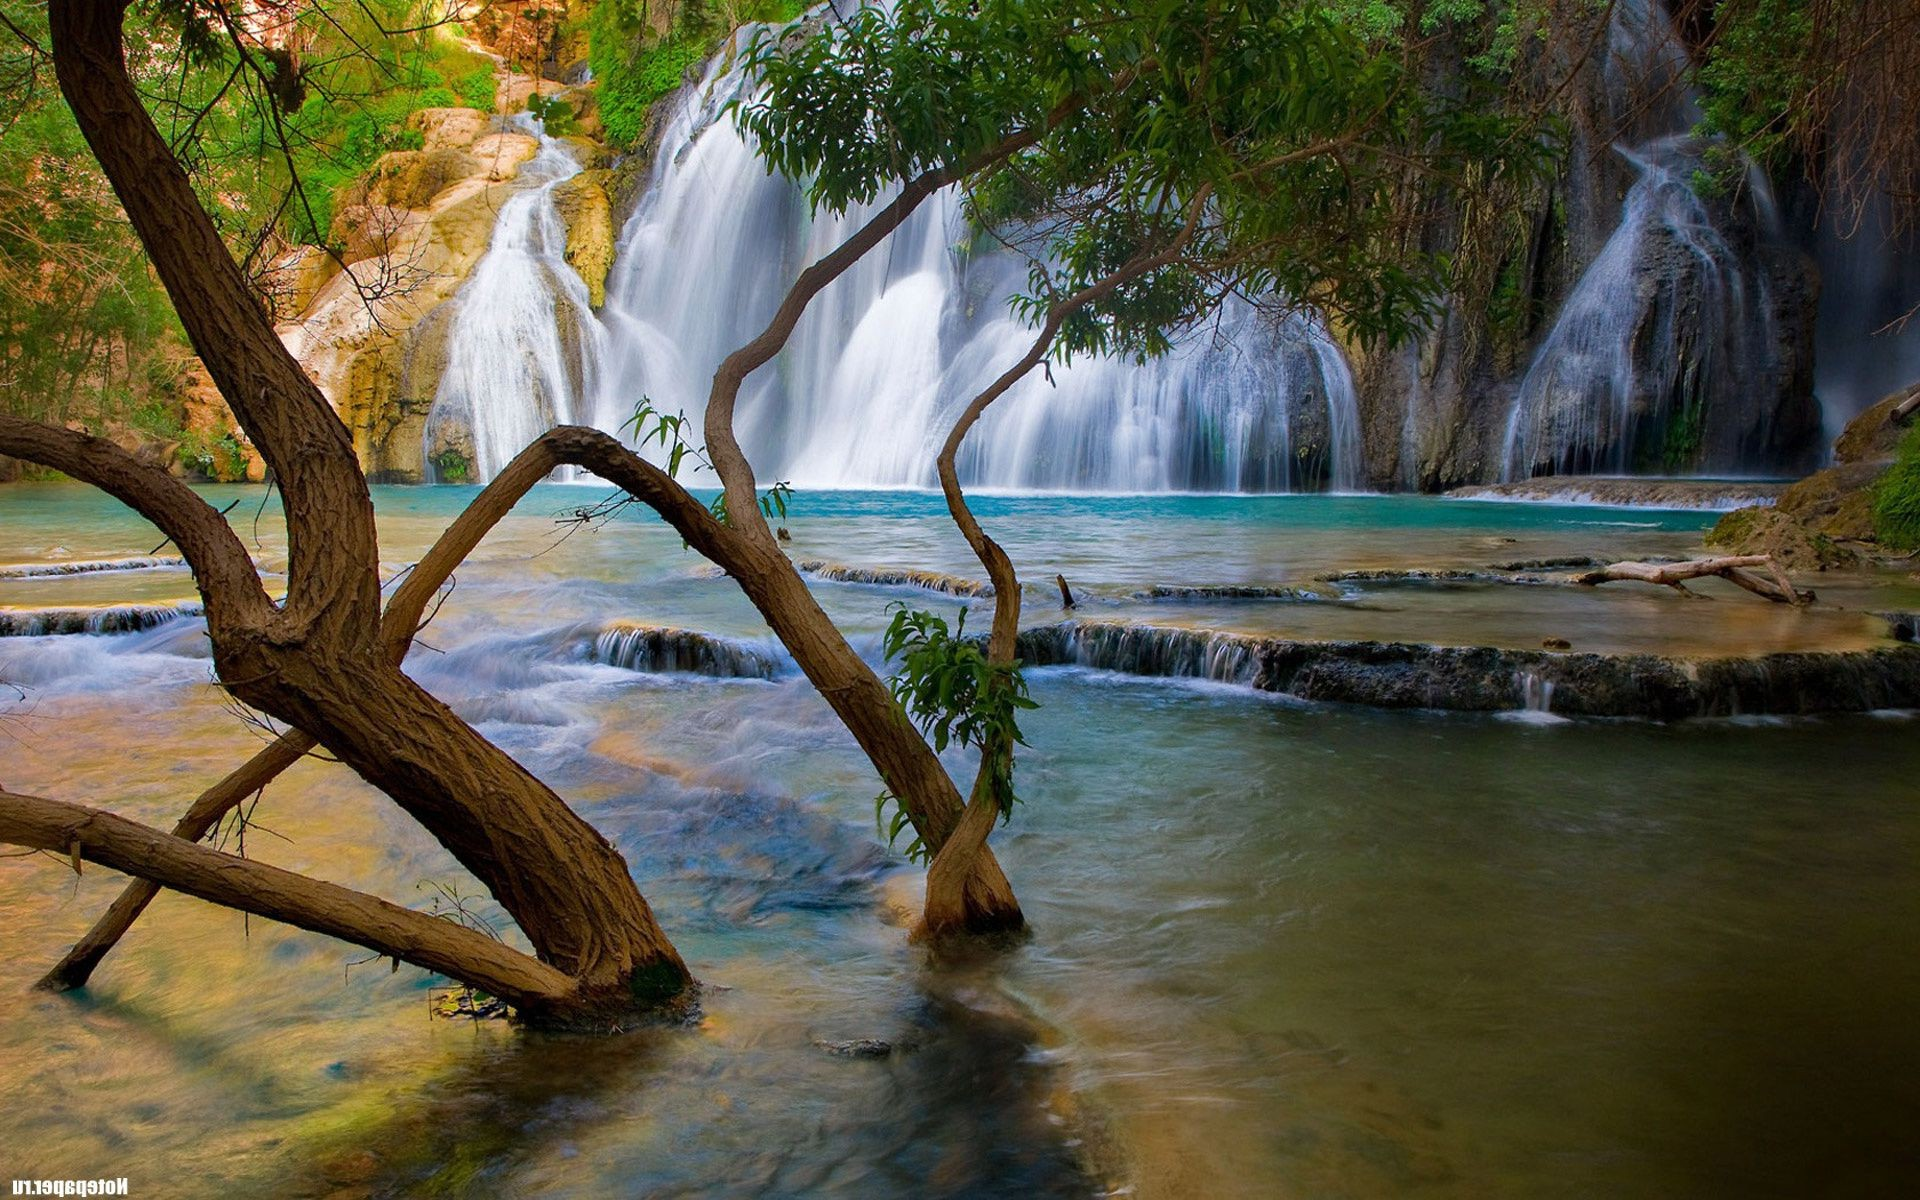 waterfalls water waterfall wood nature tree river travel stream rock landscape leaf outdoors fall tropical wet park flow beautiful pool